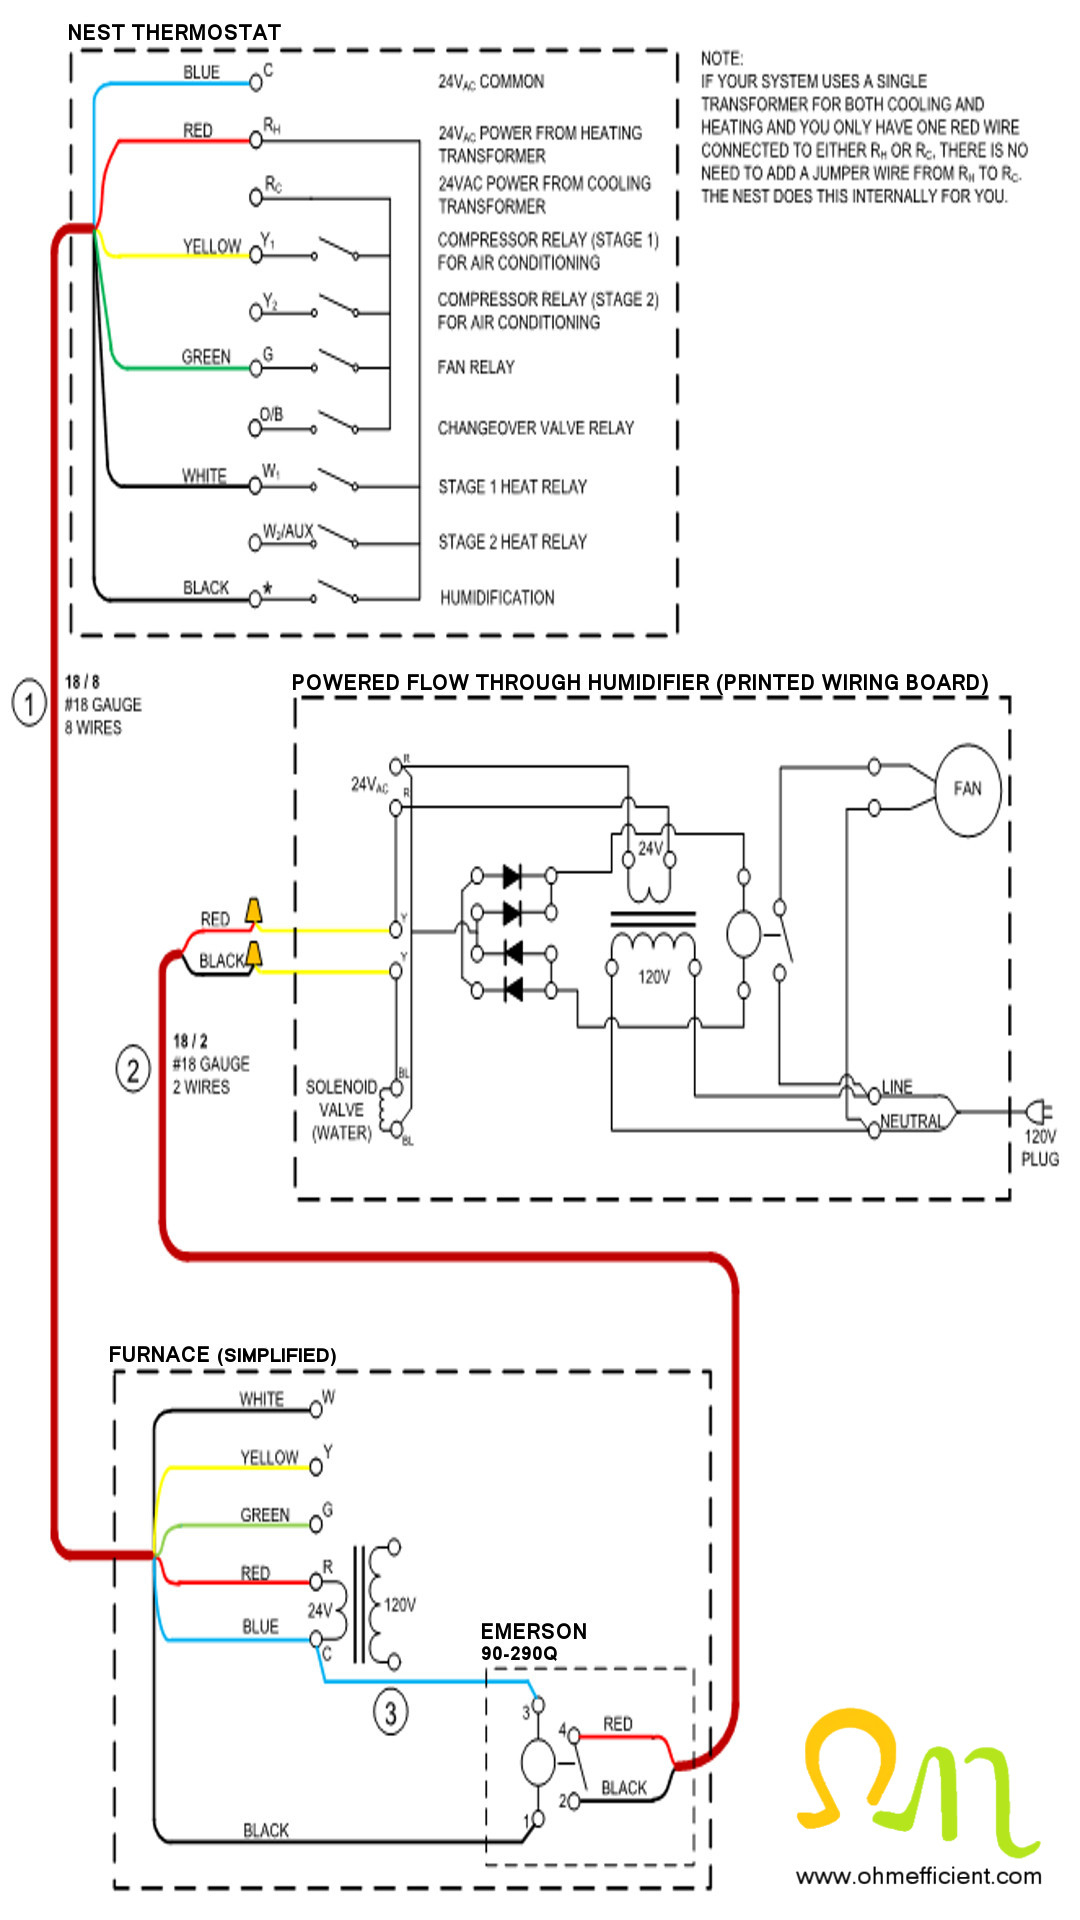 How To Connect & Setup A Nest Thermostat To Function As A Humidistat - Nest Wiring Diagram 2 Wire